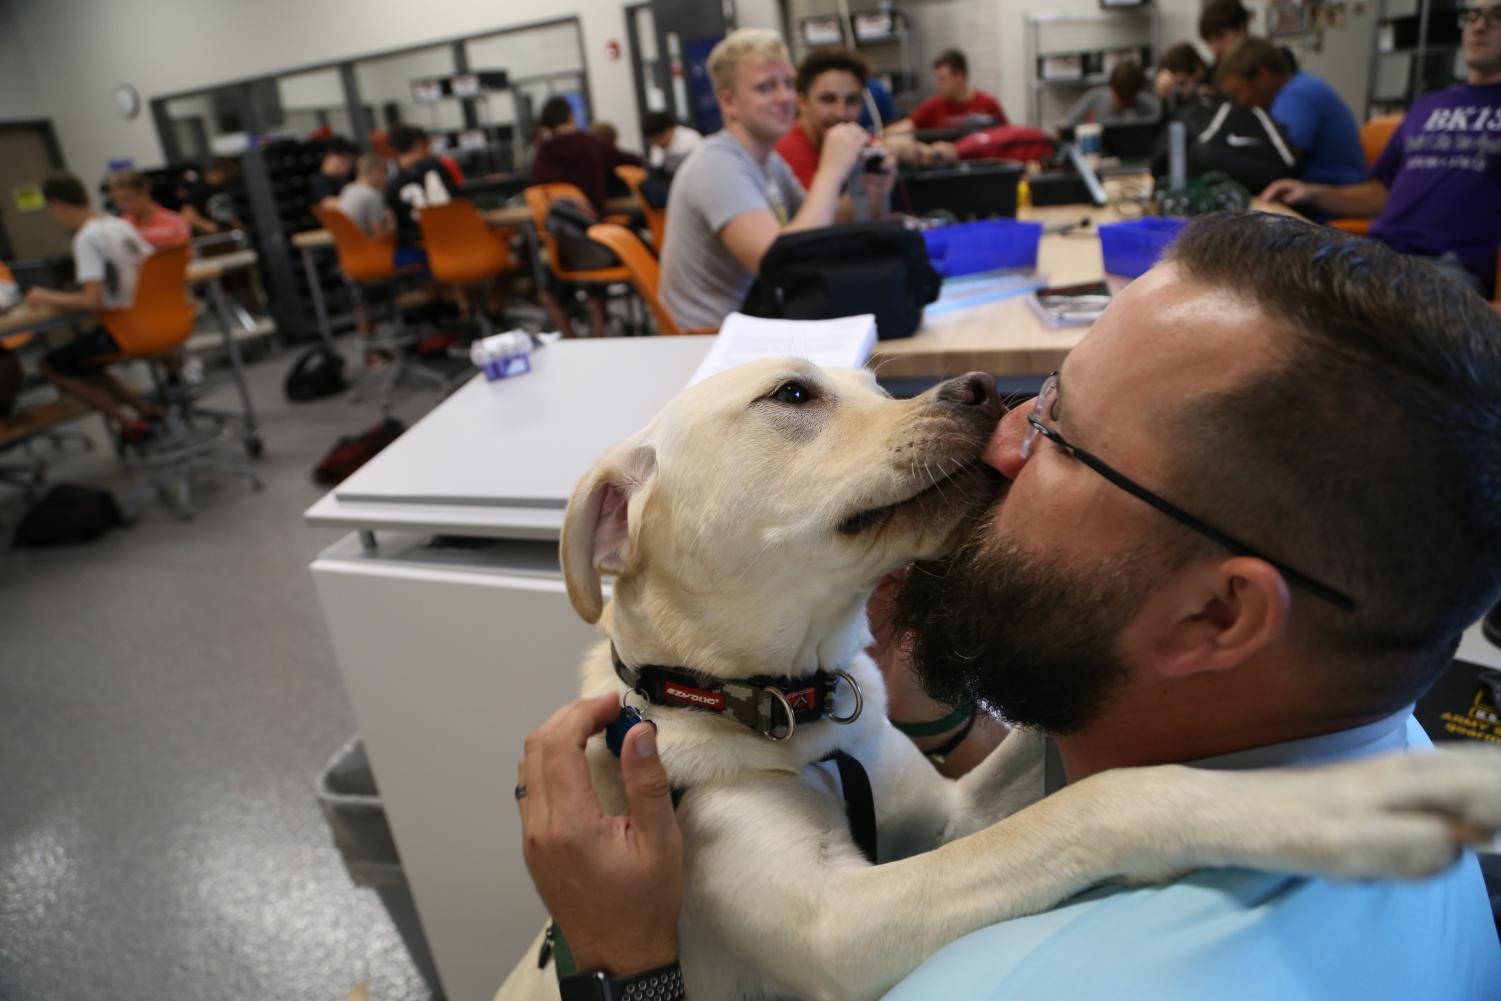 Major gives kisses to handler Jed Heath during robotics. Major is allowed to roam around the class and provide comfort to distressed students. Photo by Sam Bartlett